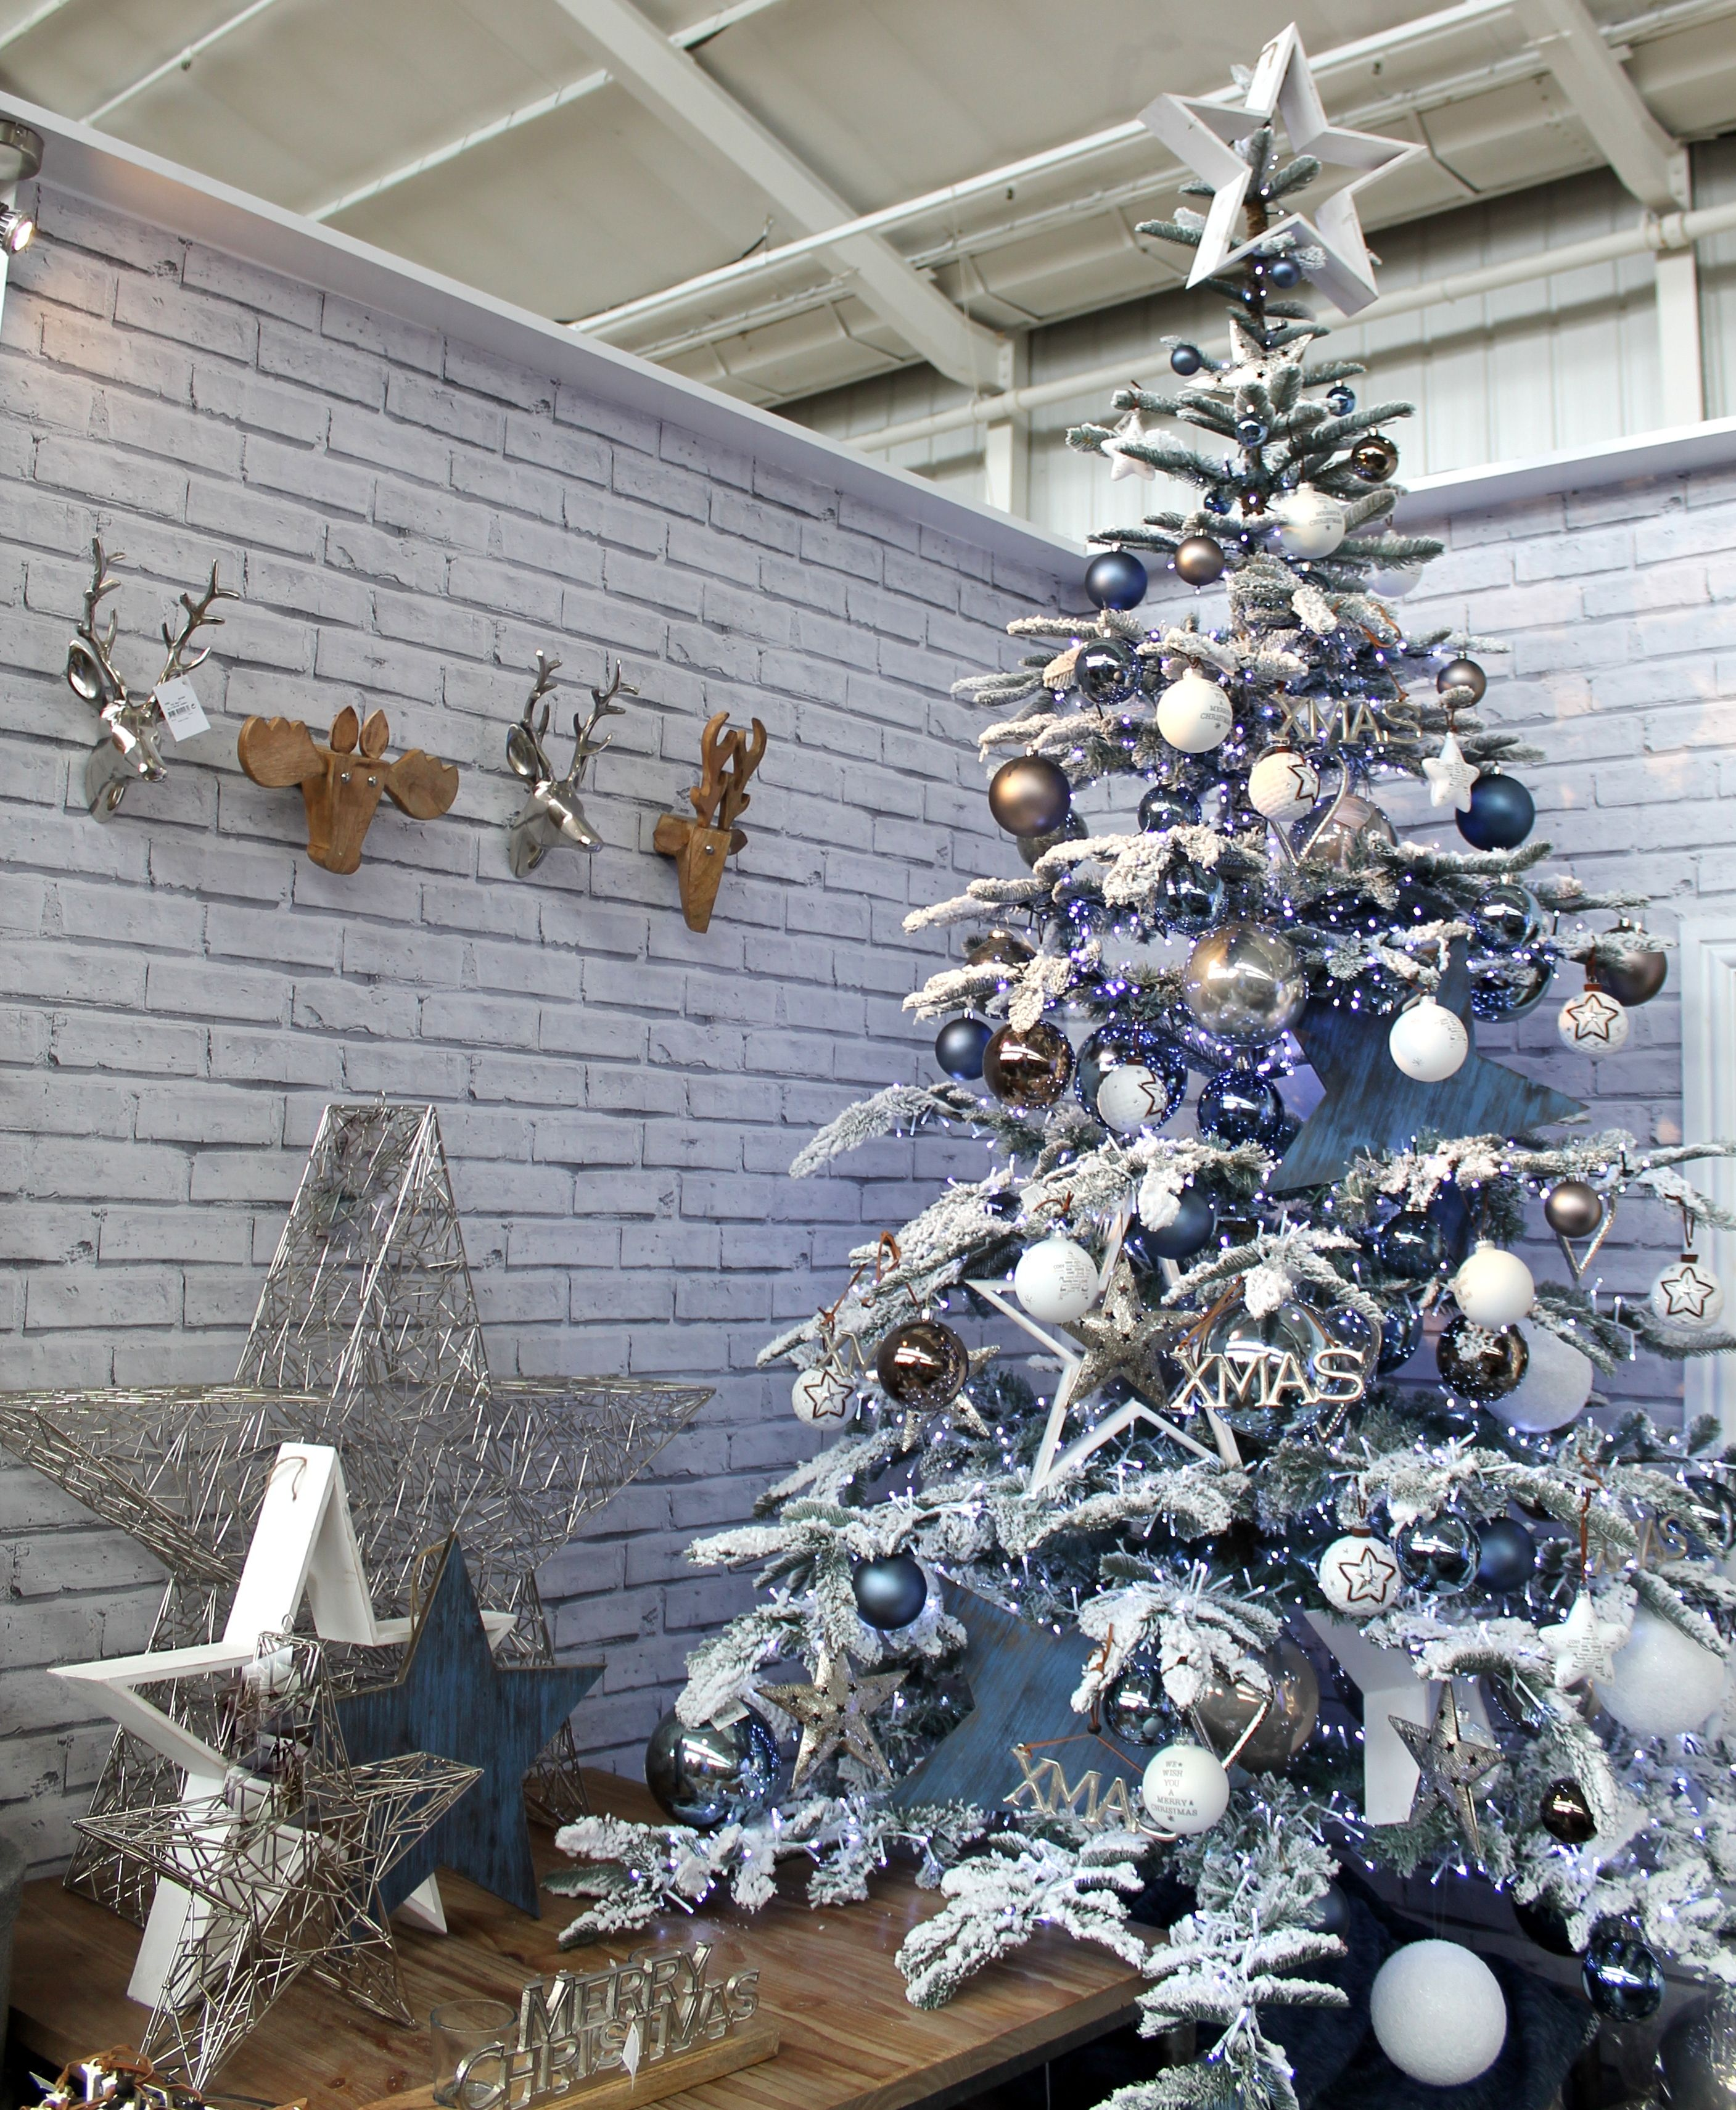 Urban Christmas Tree Design With A Blue